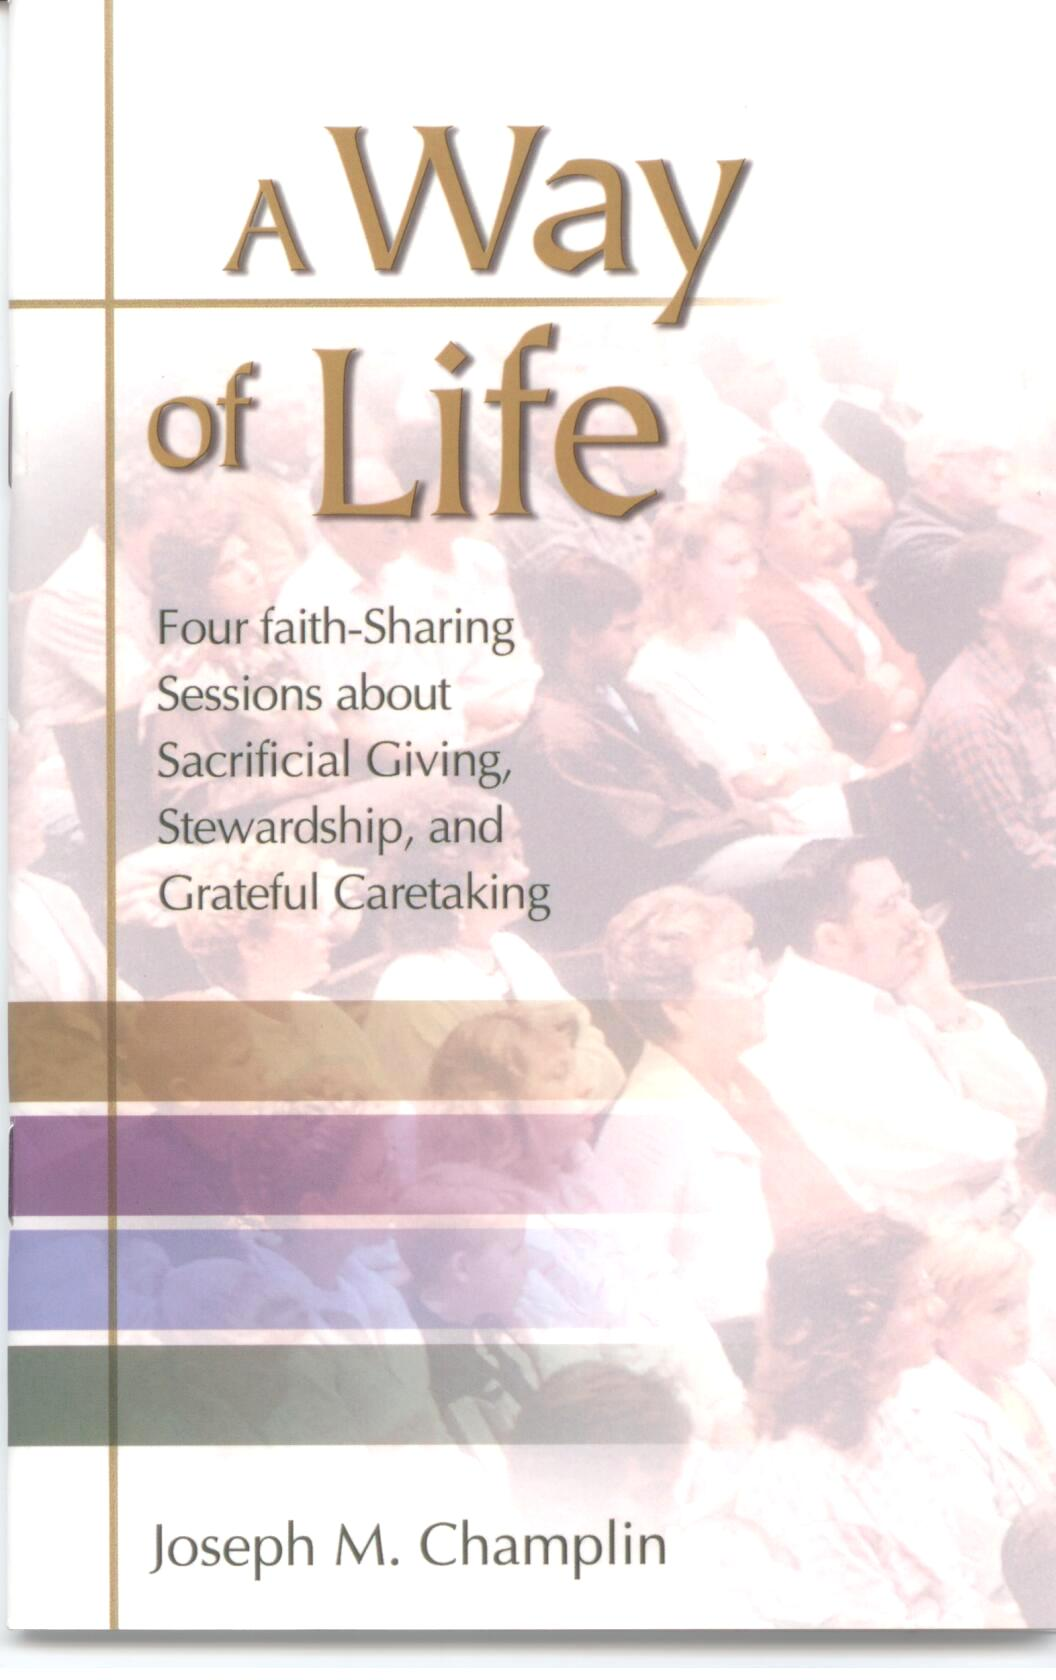 A Way Of Life by Joseph M. Champlin 108-9780814630068